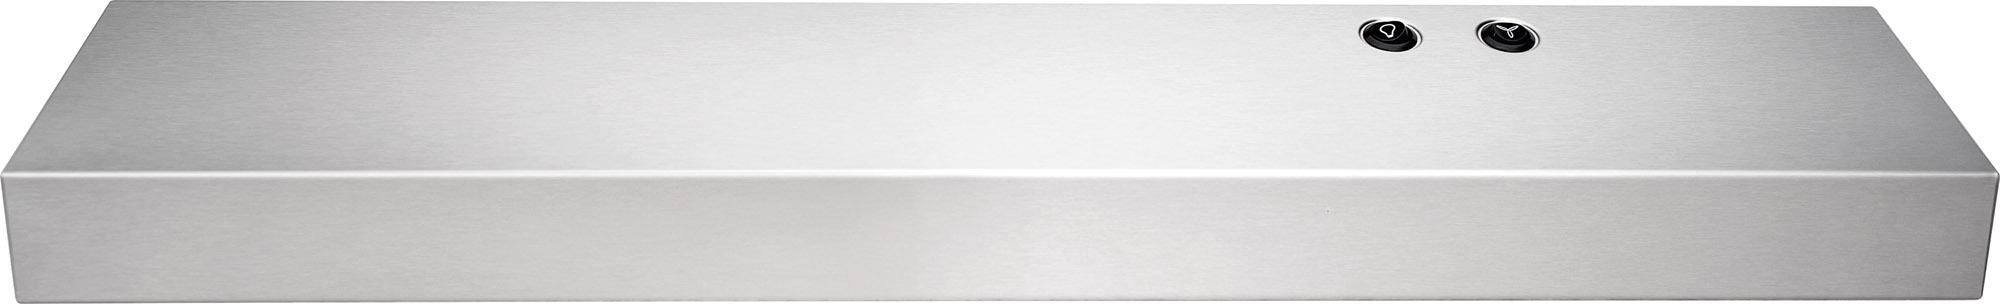 "Frigidaire Ventilation 30"" Under-the-Cabinet Range Hood - Item Number: FHWC3025MS"